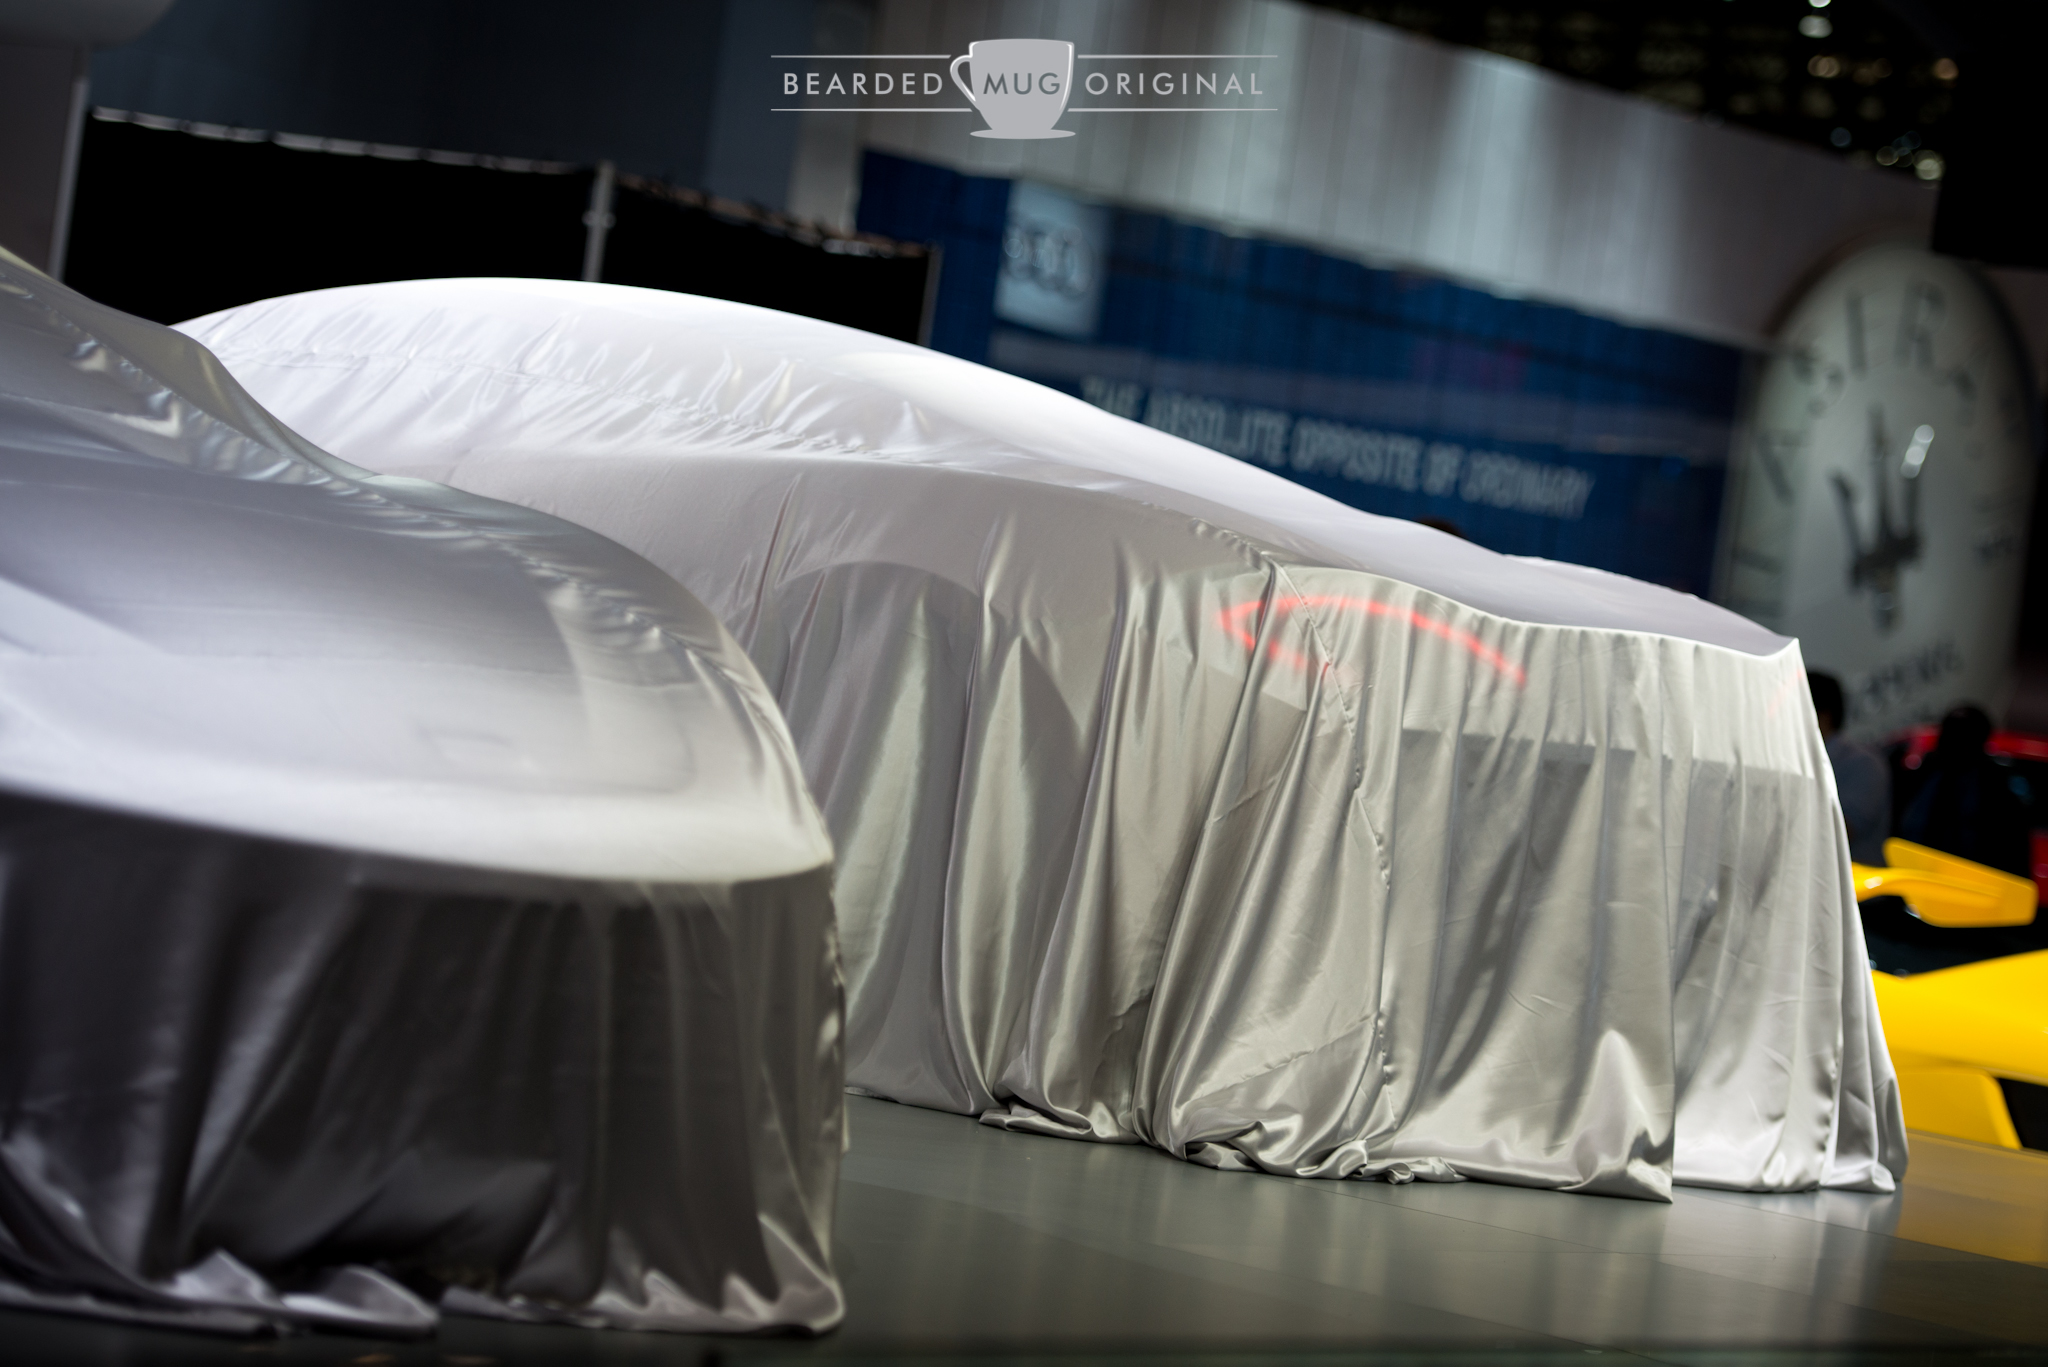 Under wraps: The world premiere of the McLaren 570S was just after my departure from the show.